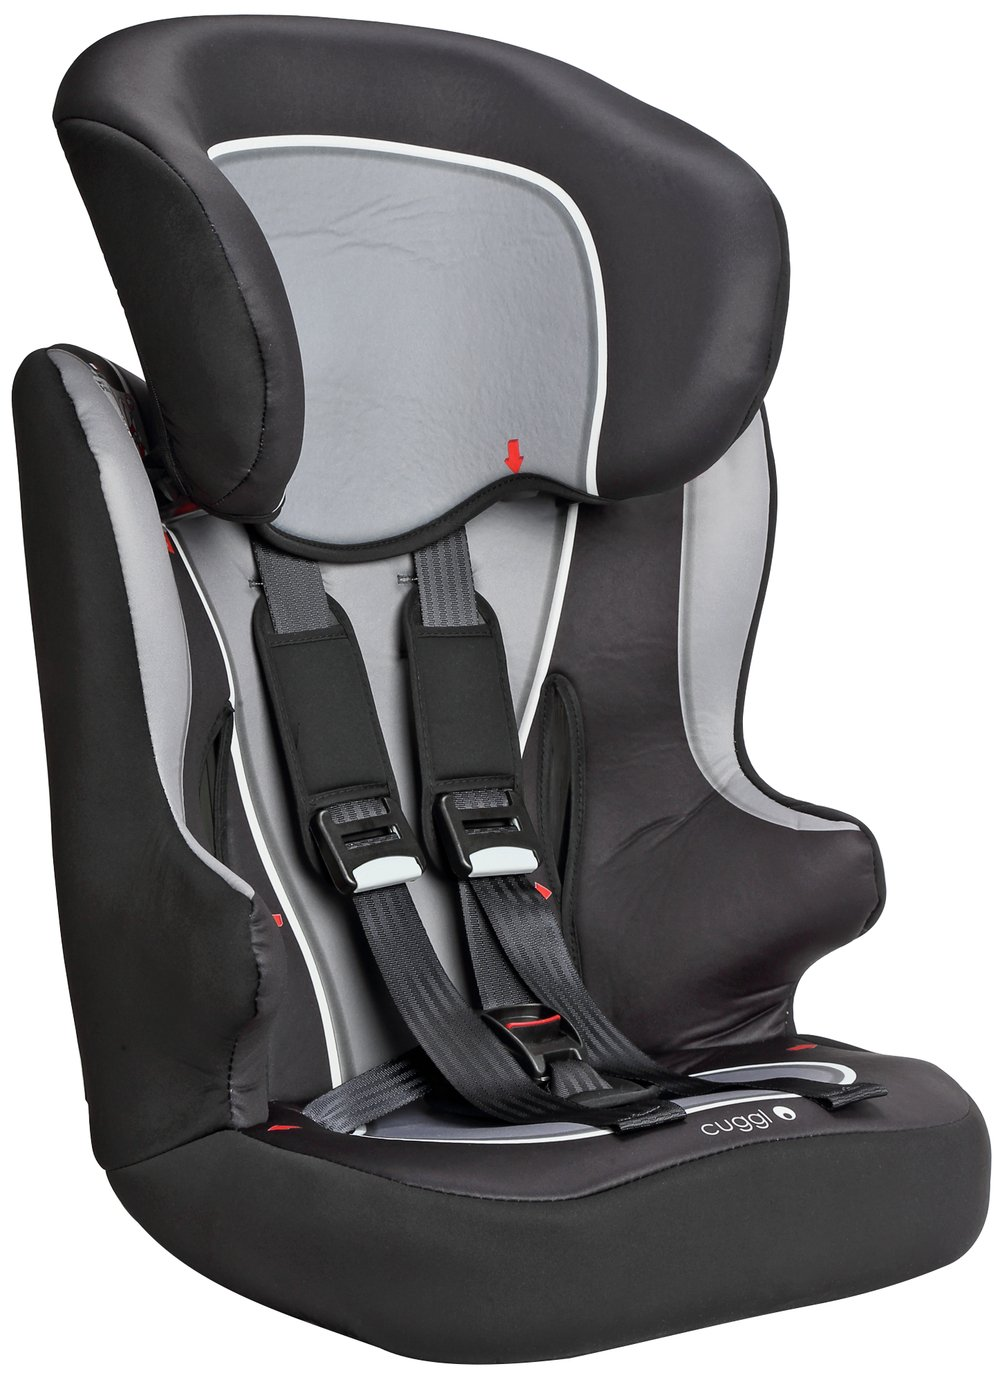 cuggl-starling-groups-1-2-3-car-seat